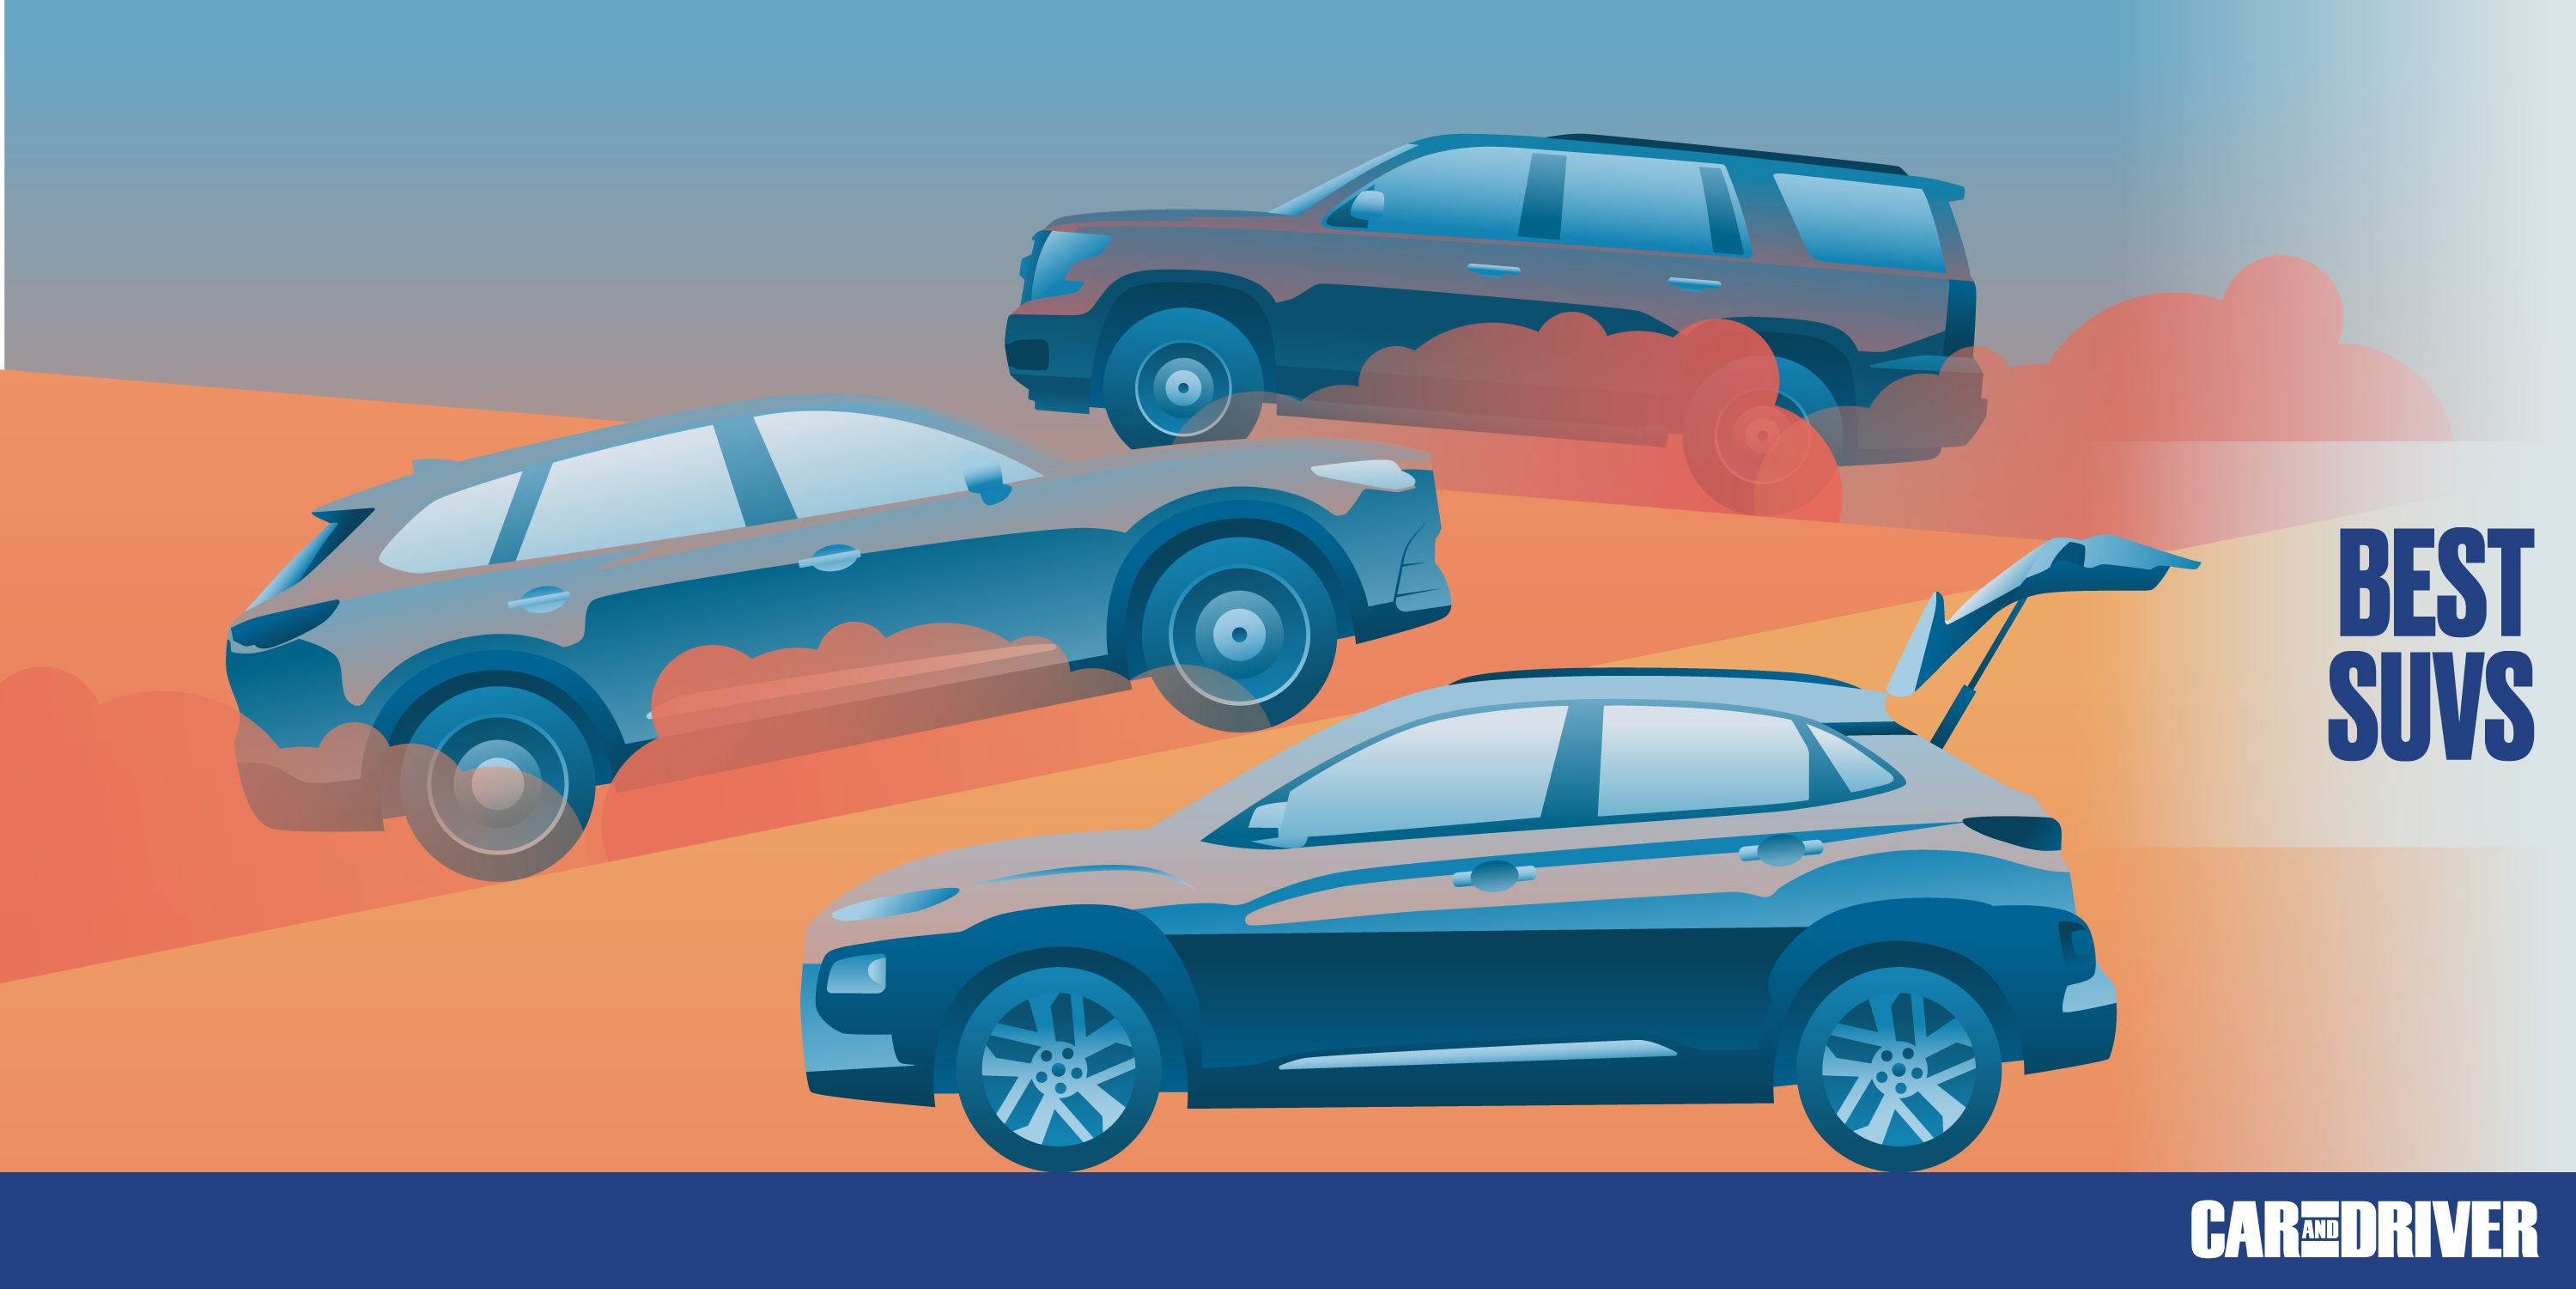 Best Suvs And Crossovers Of 2020